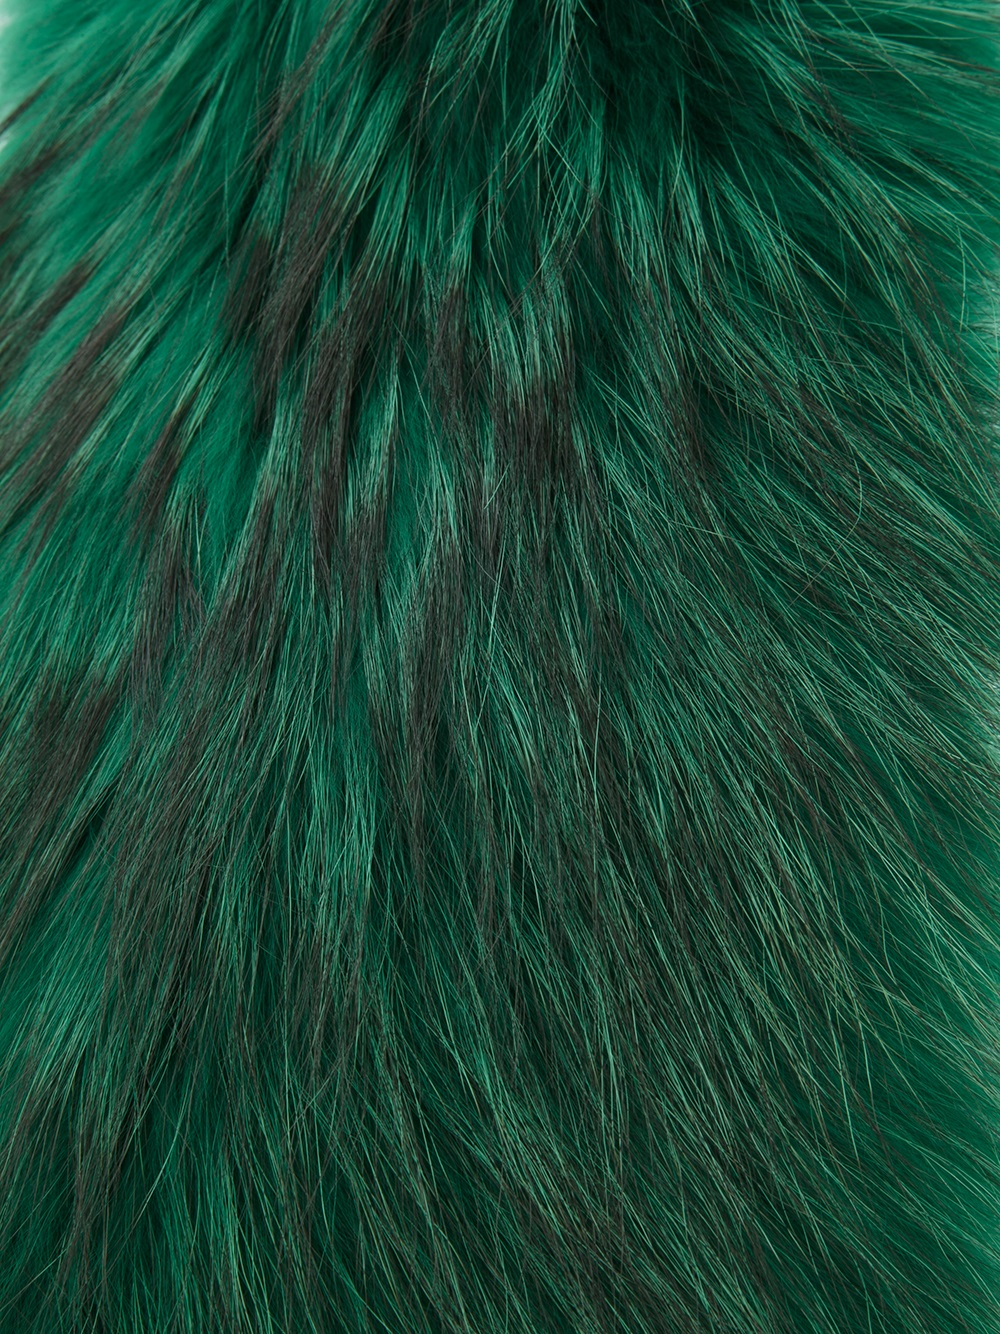 Floral Print Iphone Wallpaper Lyst P A R O S H Fur Scarf In Green